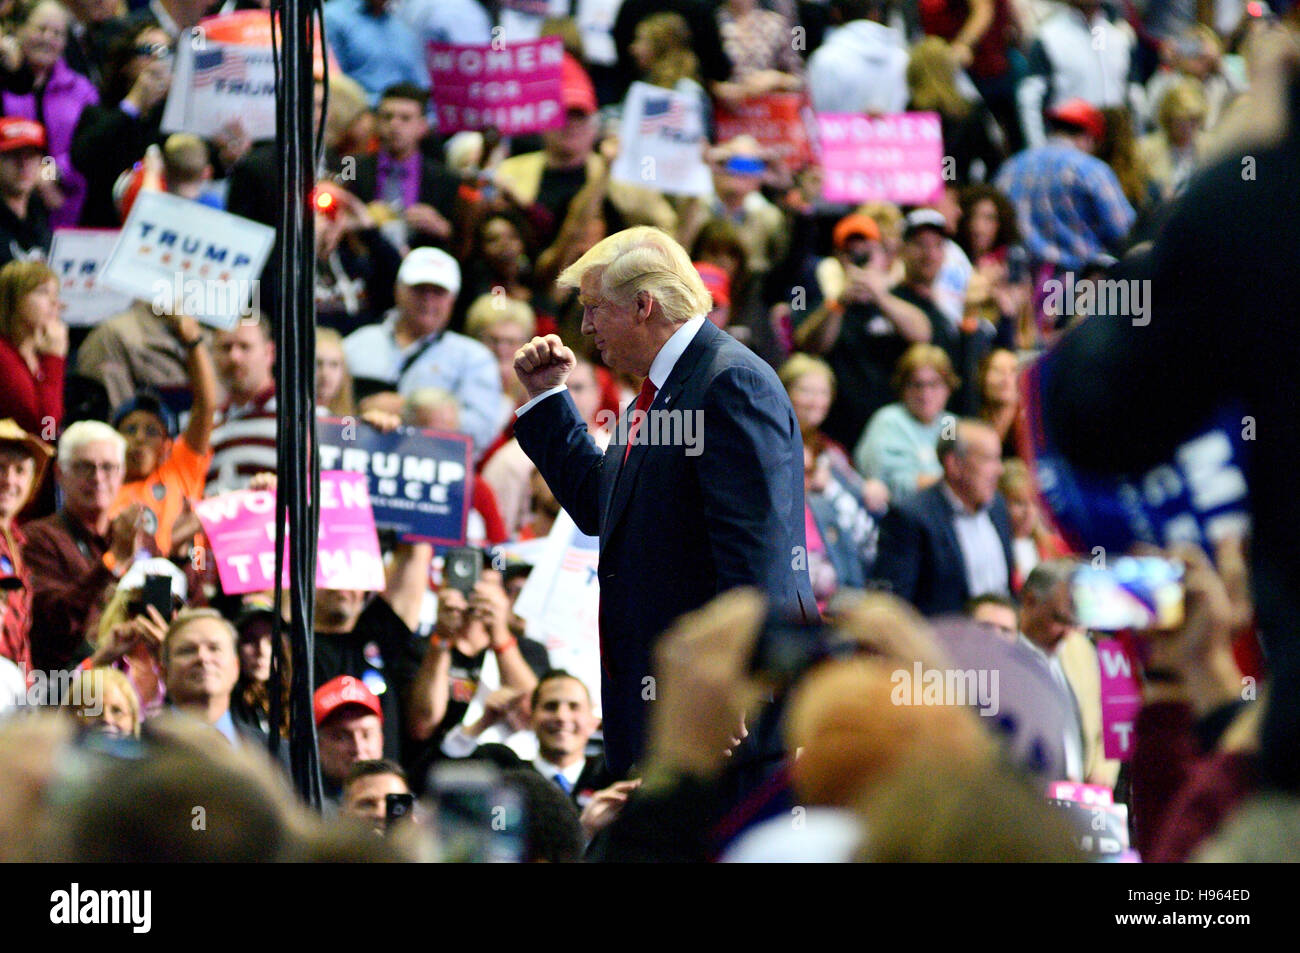 Republican presidential candidate Donald Trump rallies at the Giant Center in Hershey, in Central Pennsylvania, - Stock Image